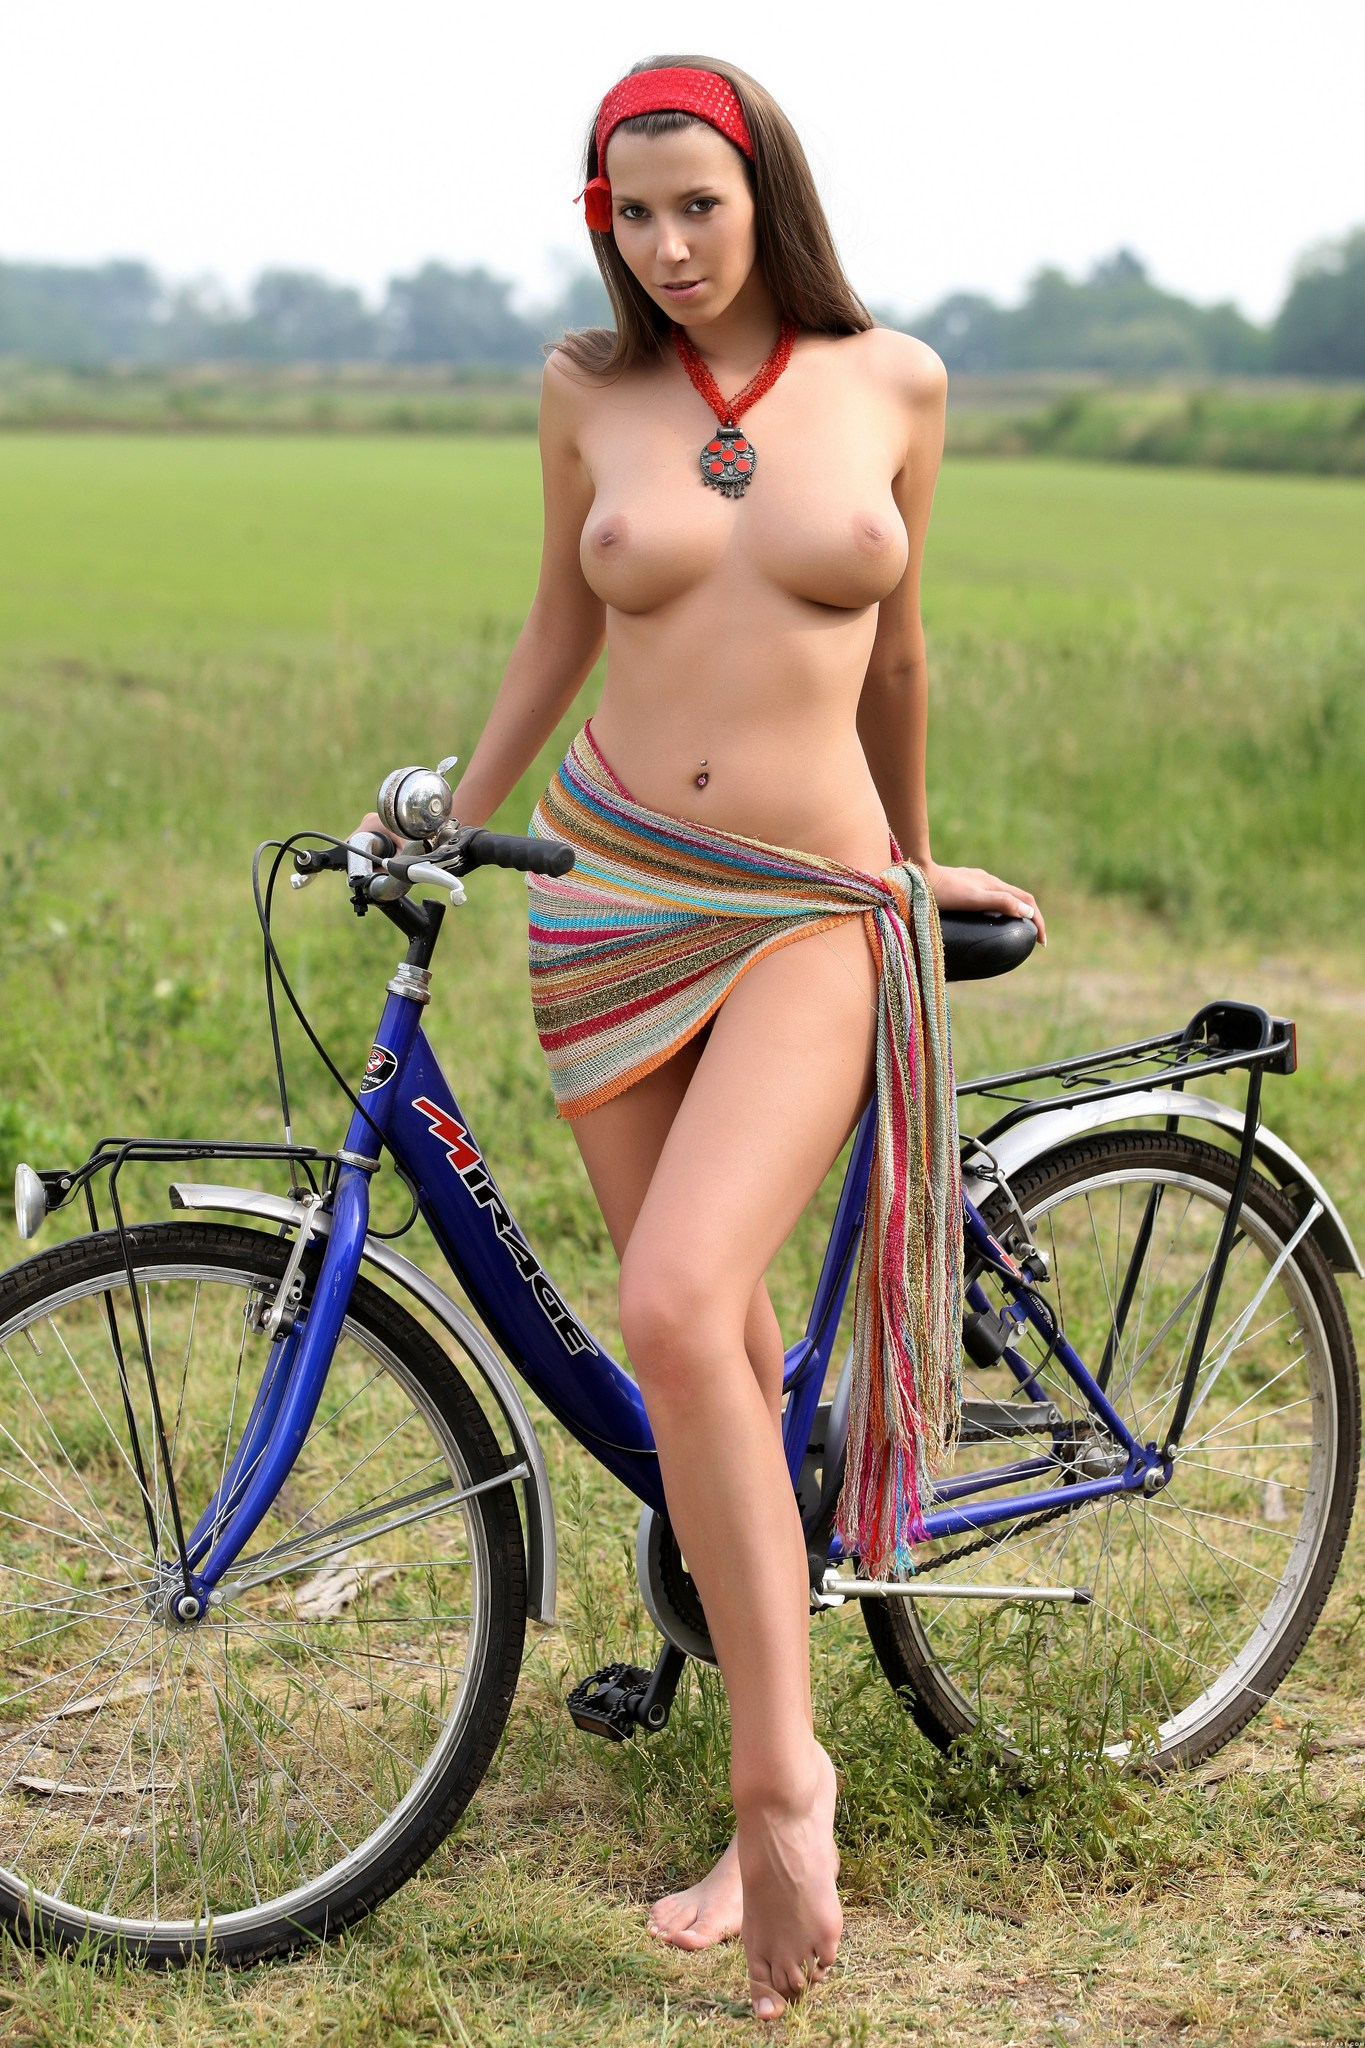 girls-on-bike-pics-femdom-men-in-pain-video-clips